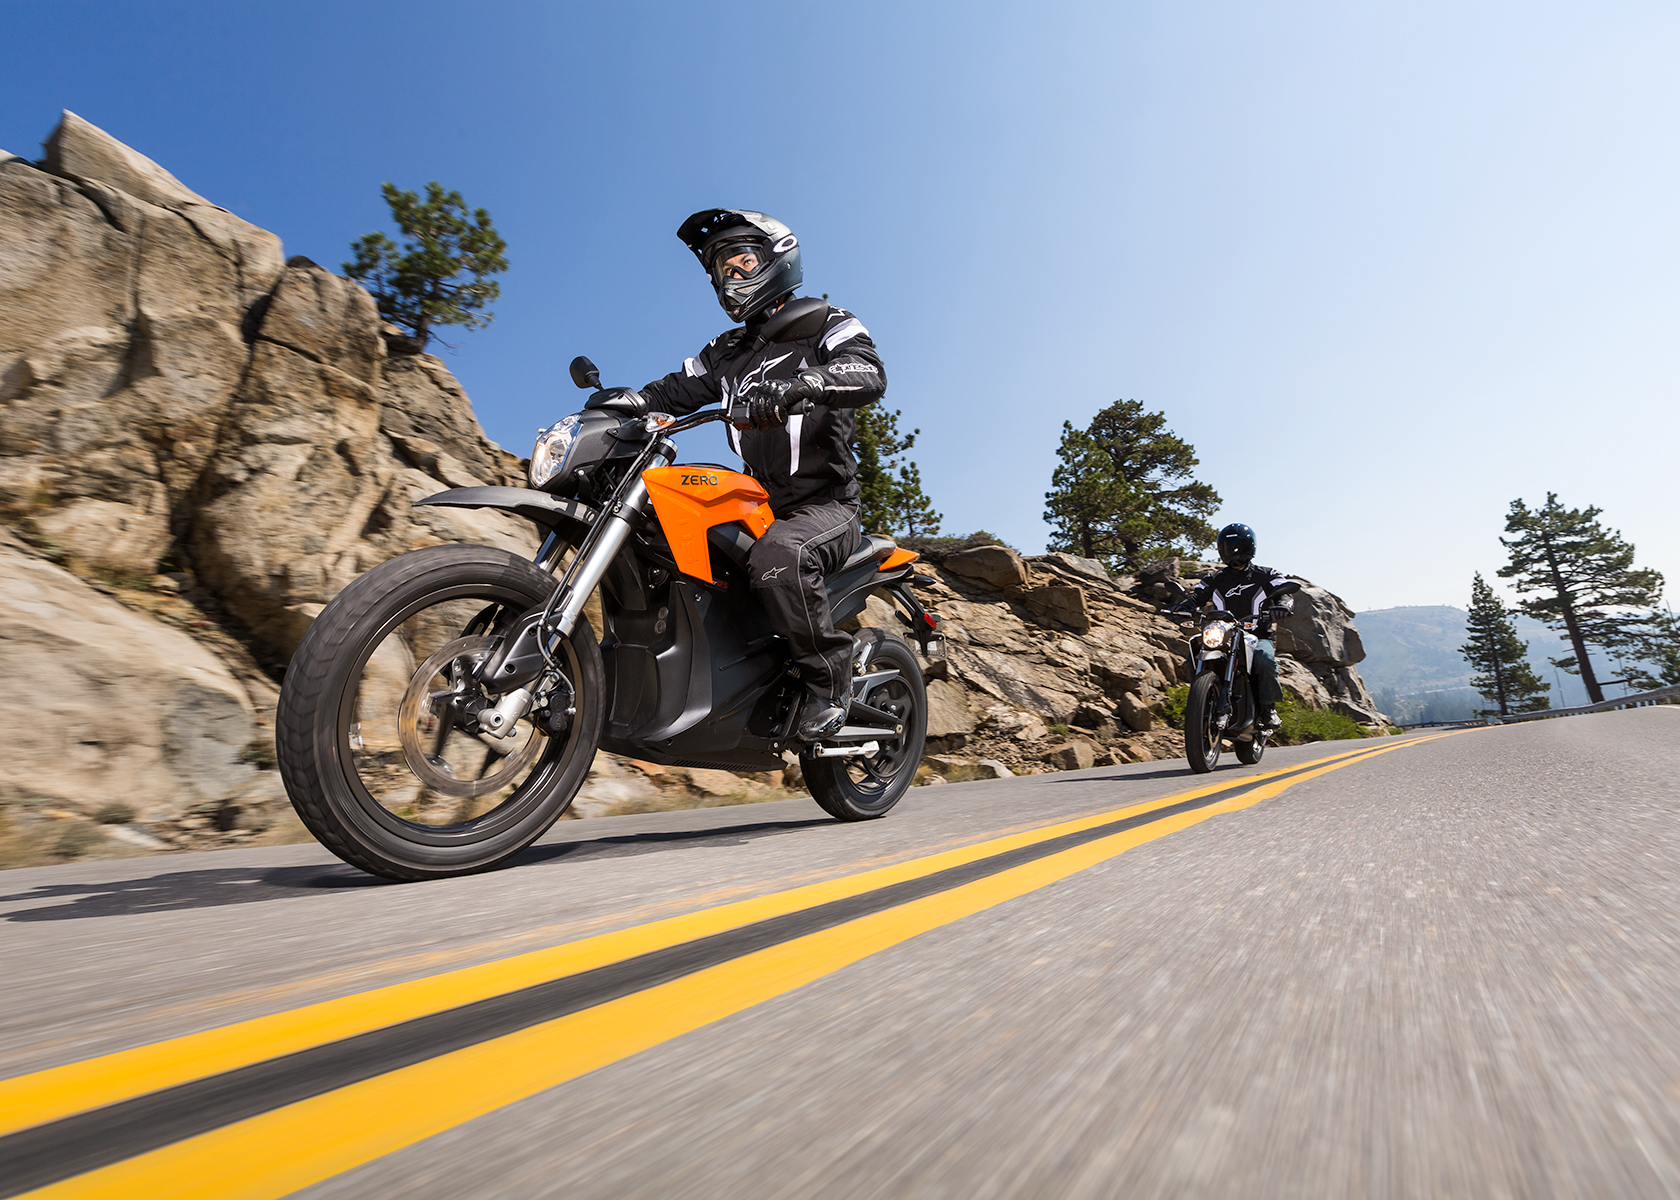 2015 Zero DS Electric Motorcycle: